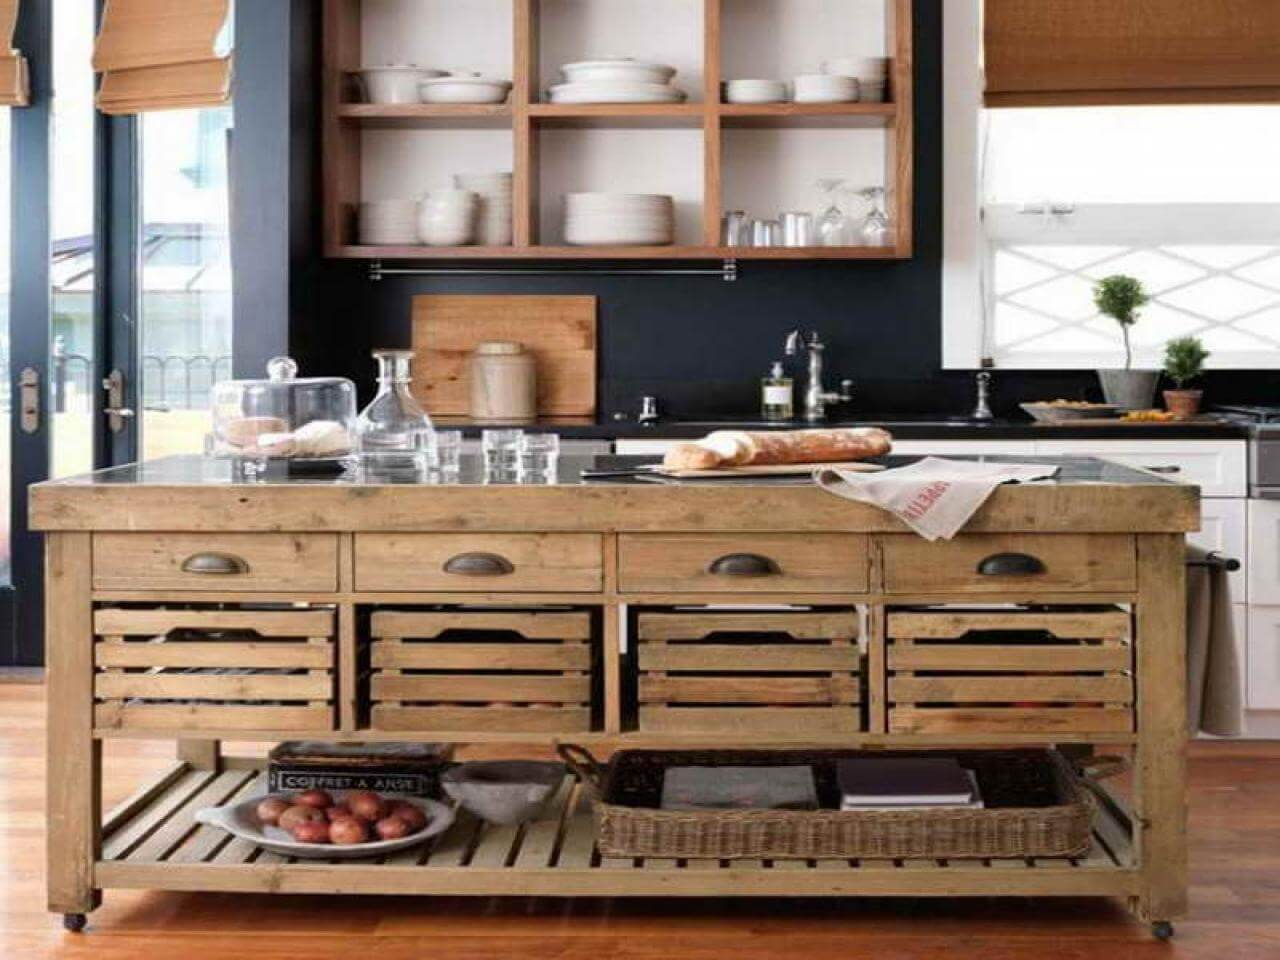 Cabinets and Drawers For Rustic Kitchens